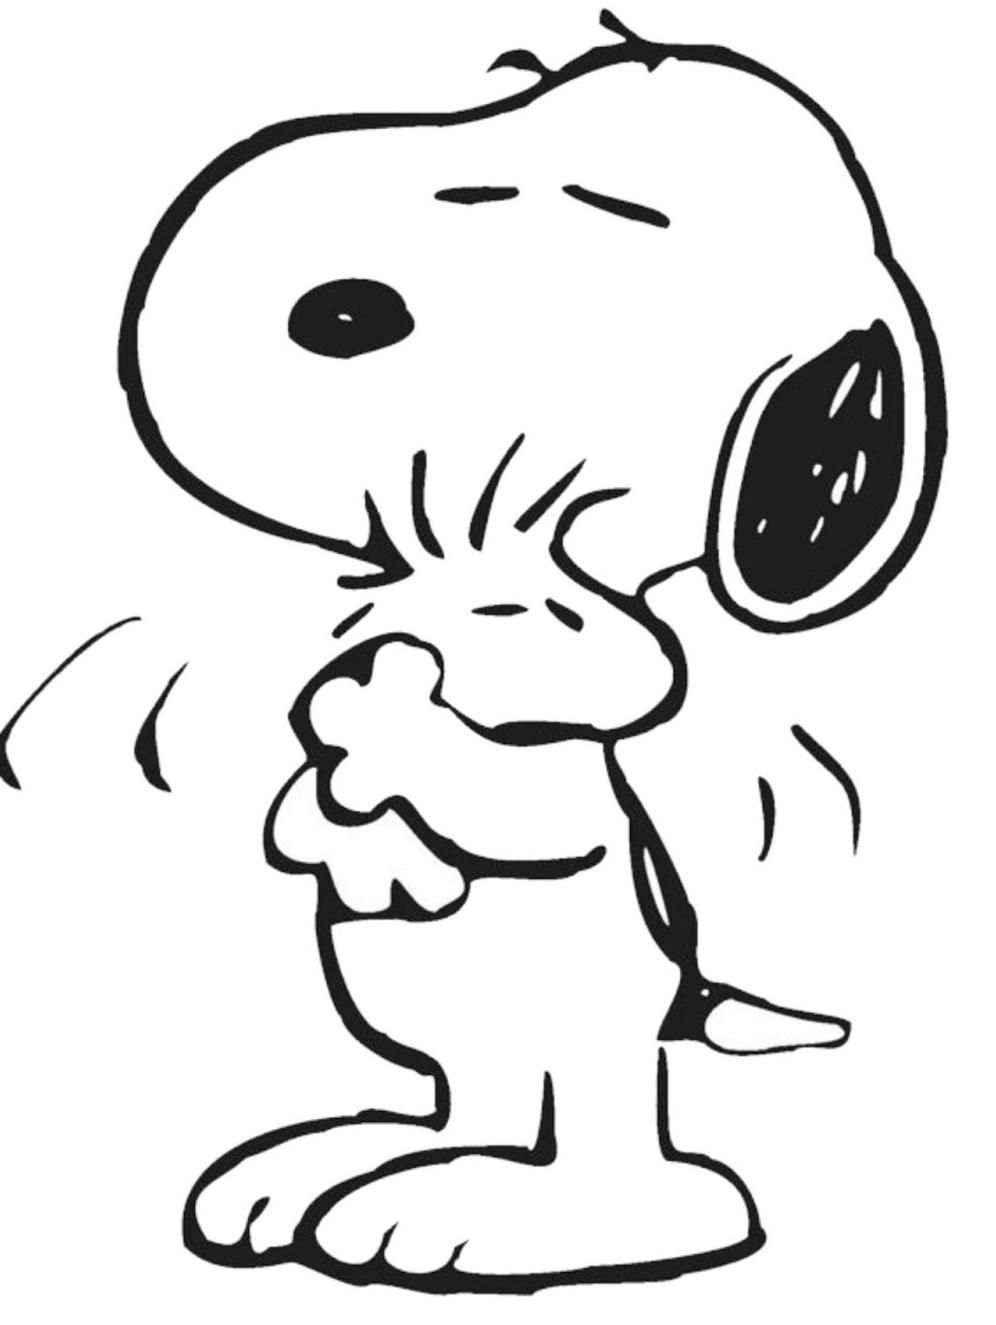 Peanuts Coloring Pages Peanuts Coloring Pages Creative Inspiration Snoopy Coloring Pages Davemelillo Com Snoopy Coloring Pages Valentine Coloring Pages Birthday Coloring Pages